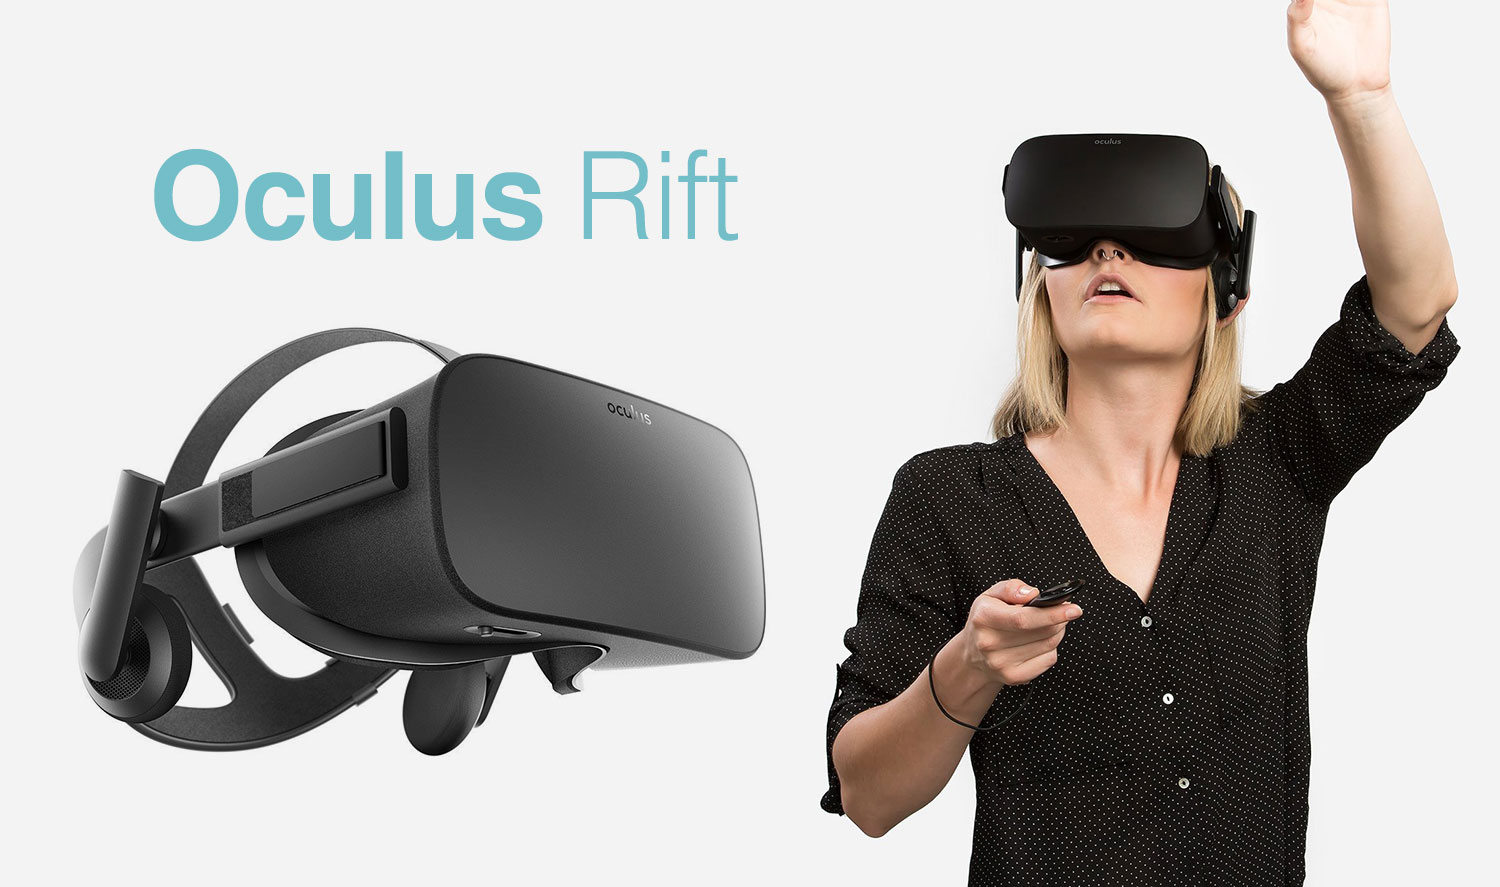 Buy-Oculus-Rift-virtual-reality-headset-2016